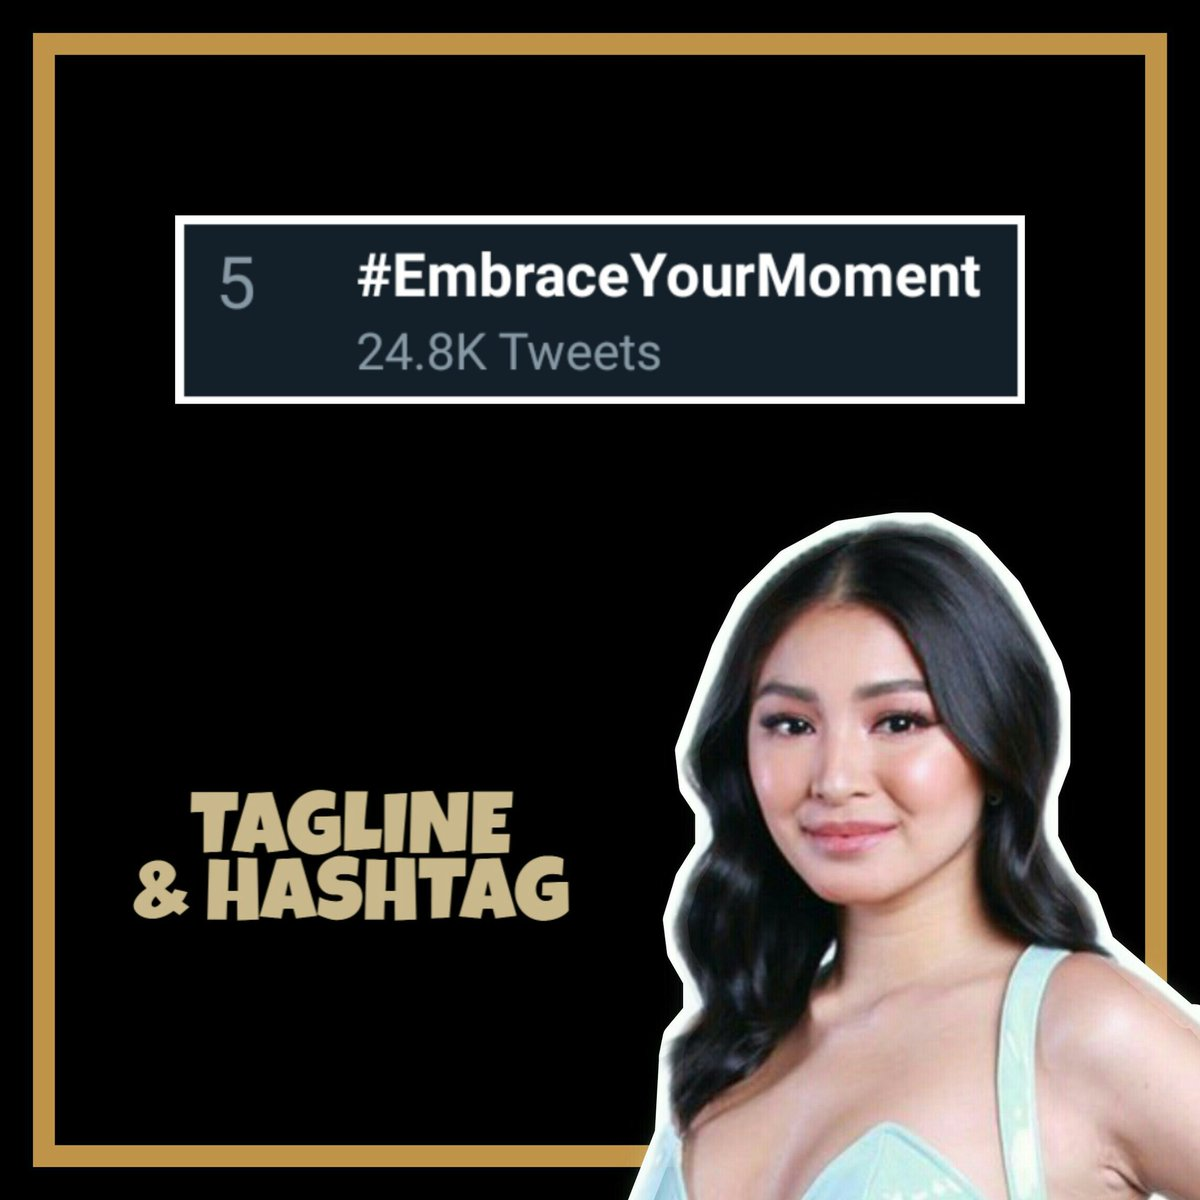 #EmbraceYourMoment on 5th spot! Thank you for watching and tweeting with us! <br>http://pic.twitter.com/Q6CKZkaKlK